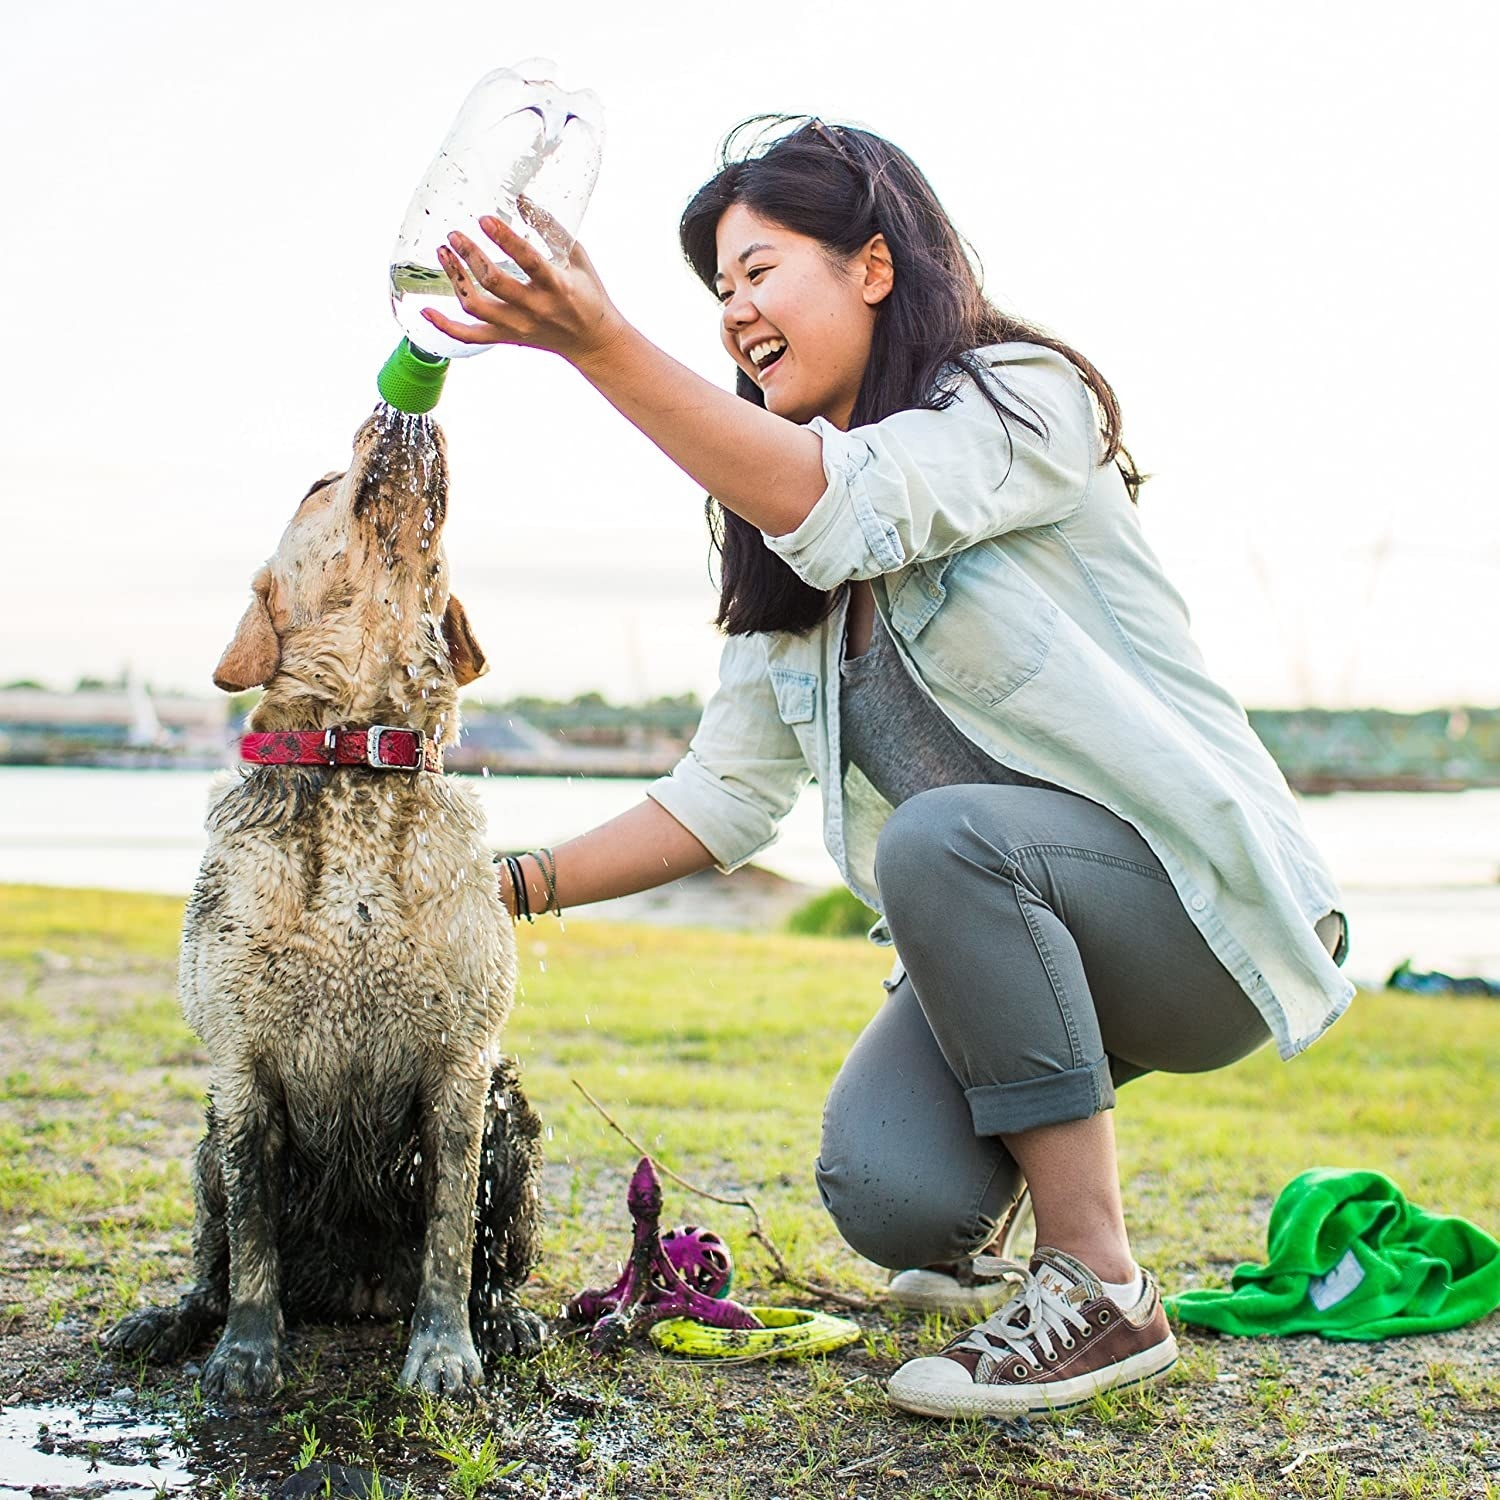 a model washes of a mud-covered labrador using the kurgo portable shower attachment